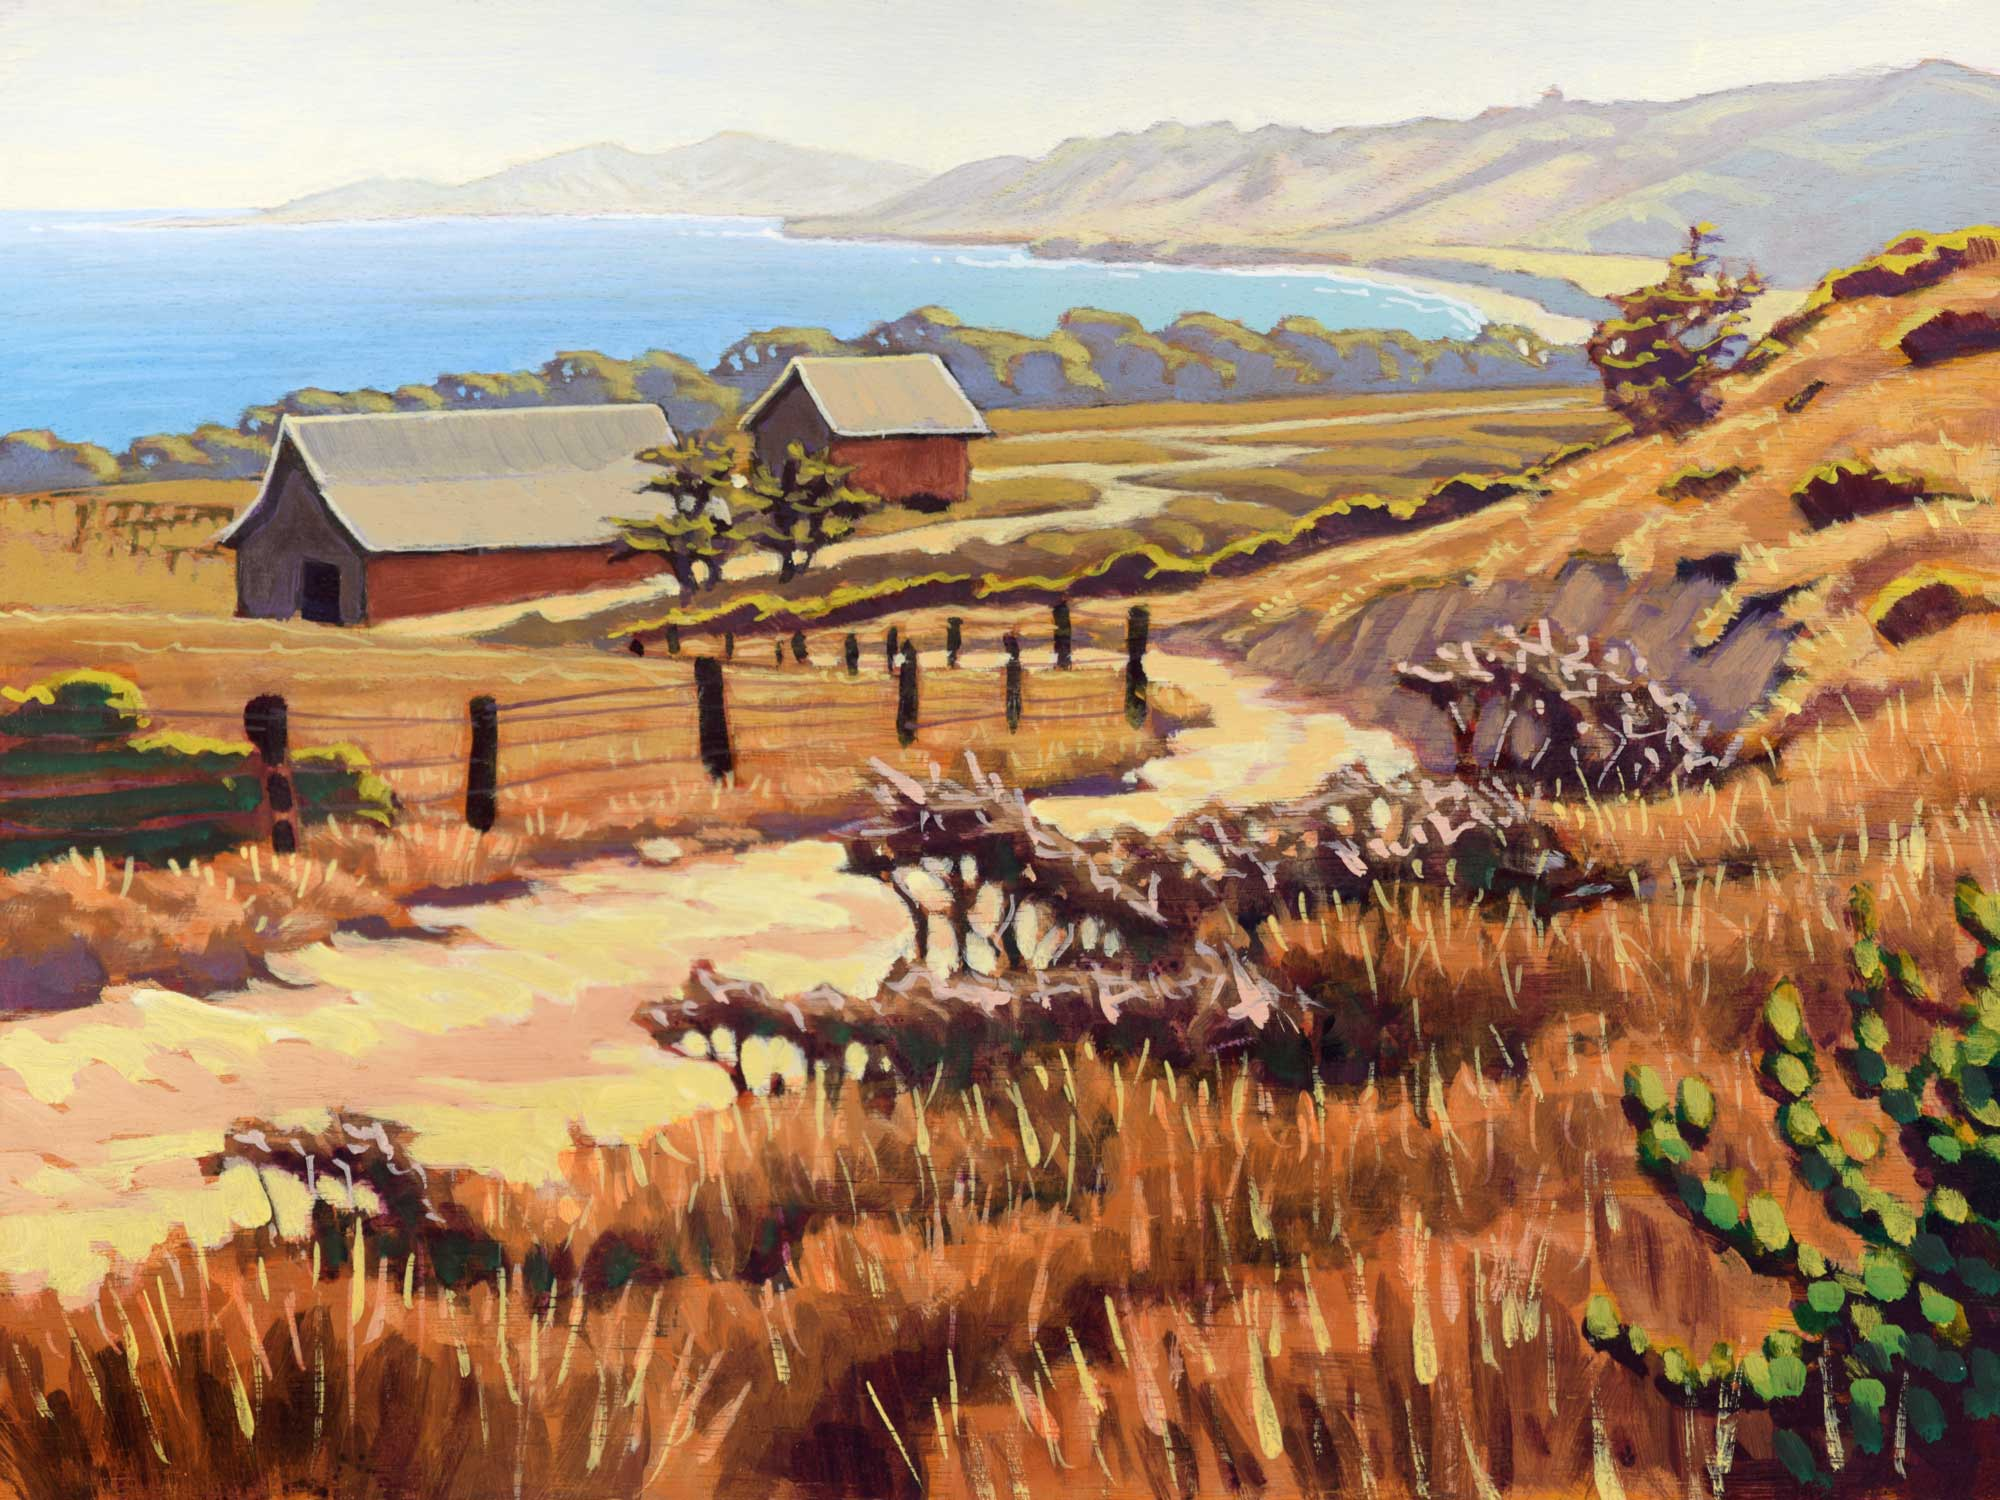 Plein air artwork from Santa Rosa Island in the Channel Islands National Park